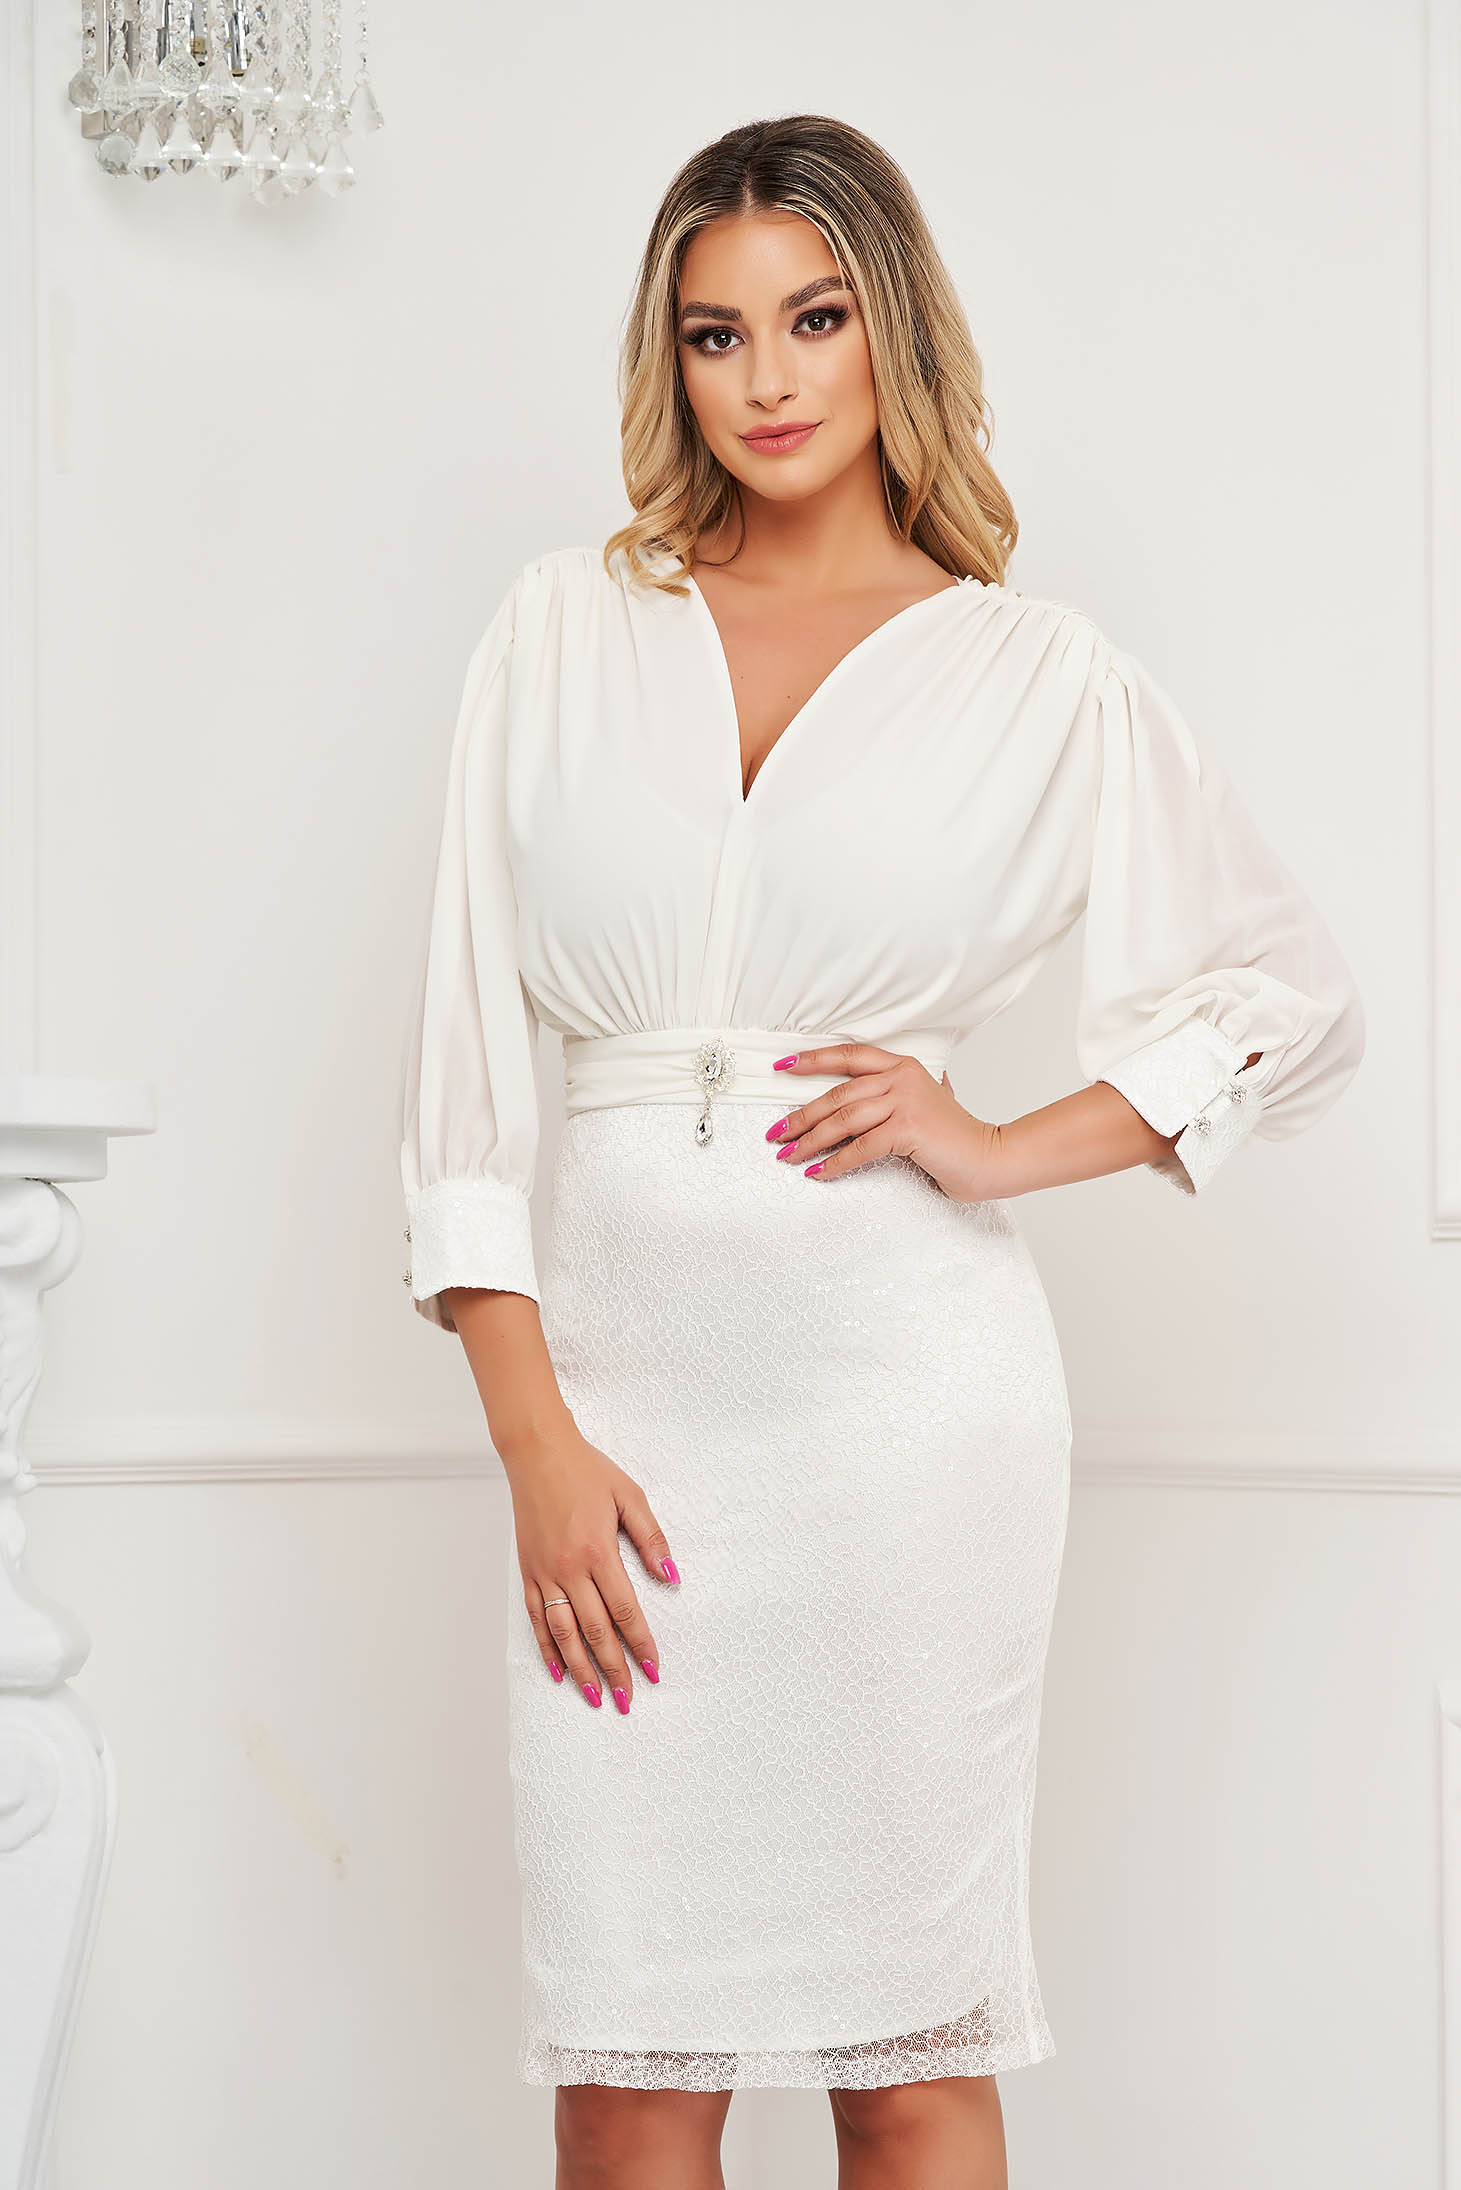 White pencil dress satin texture skirt with vail overlap accessorized with breastpin